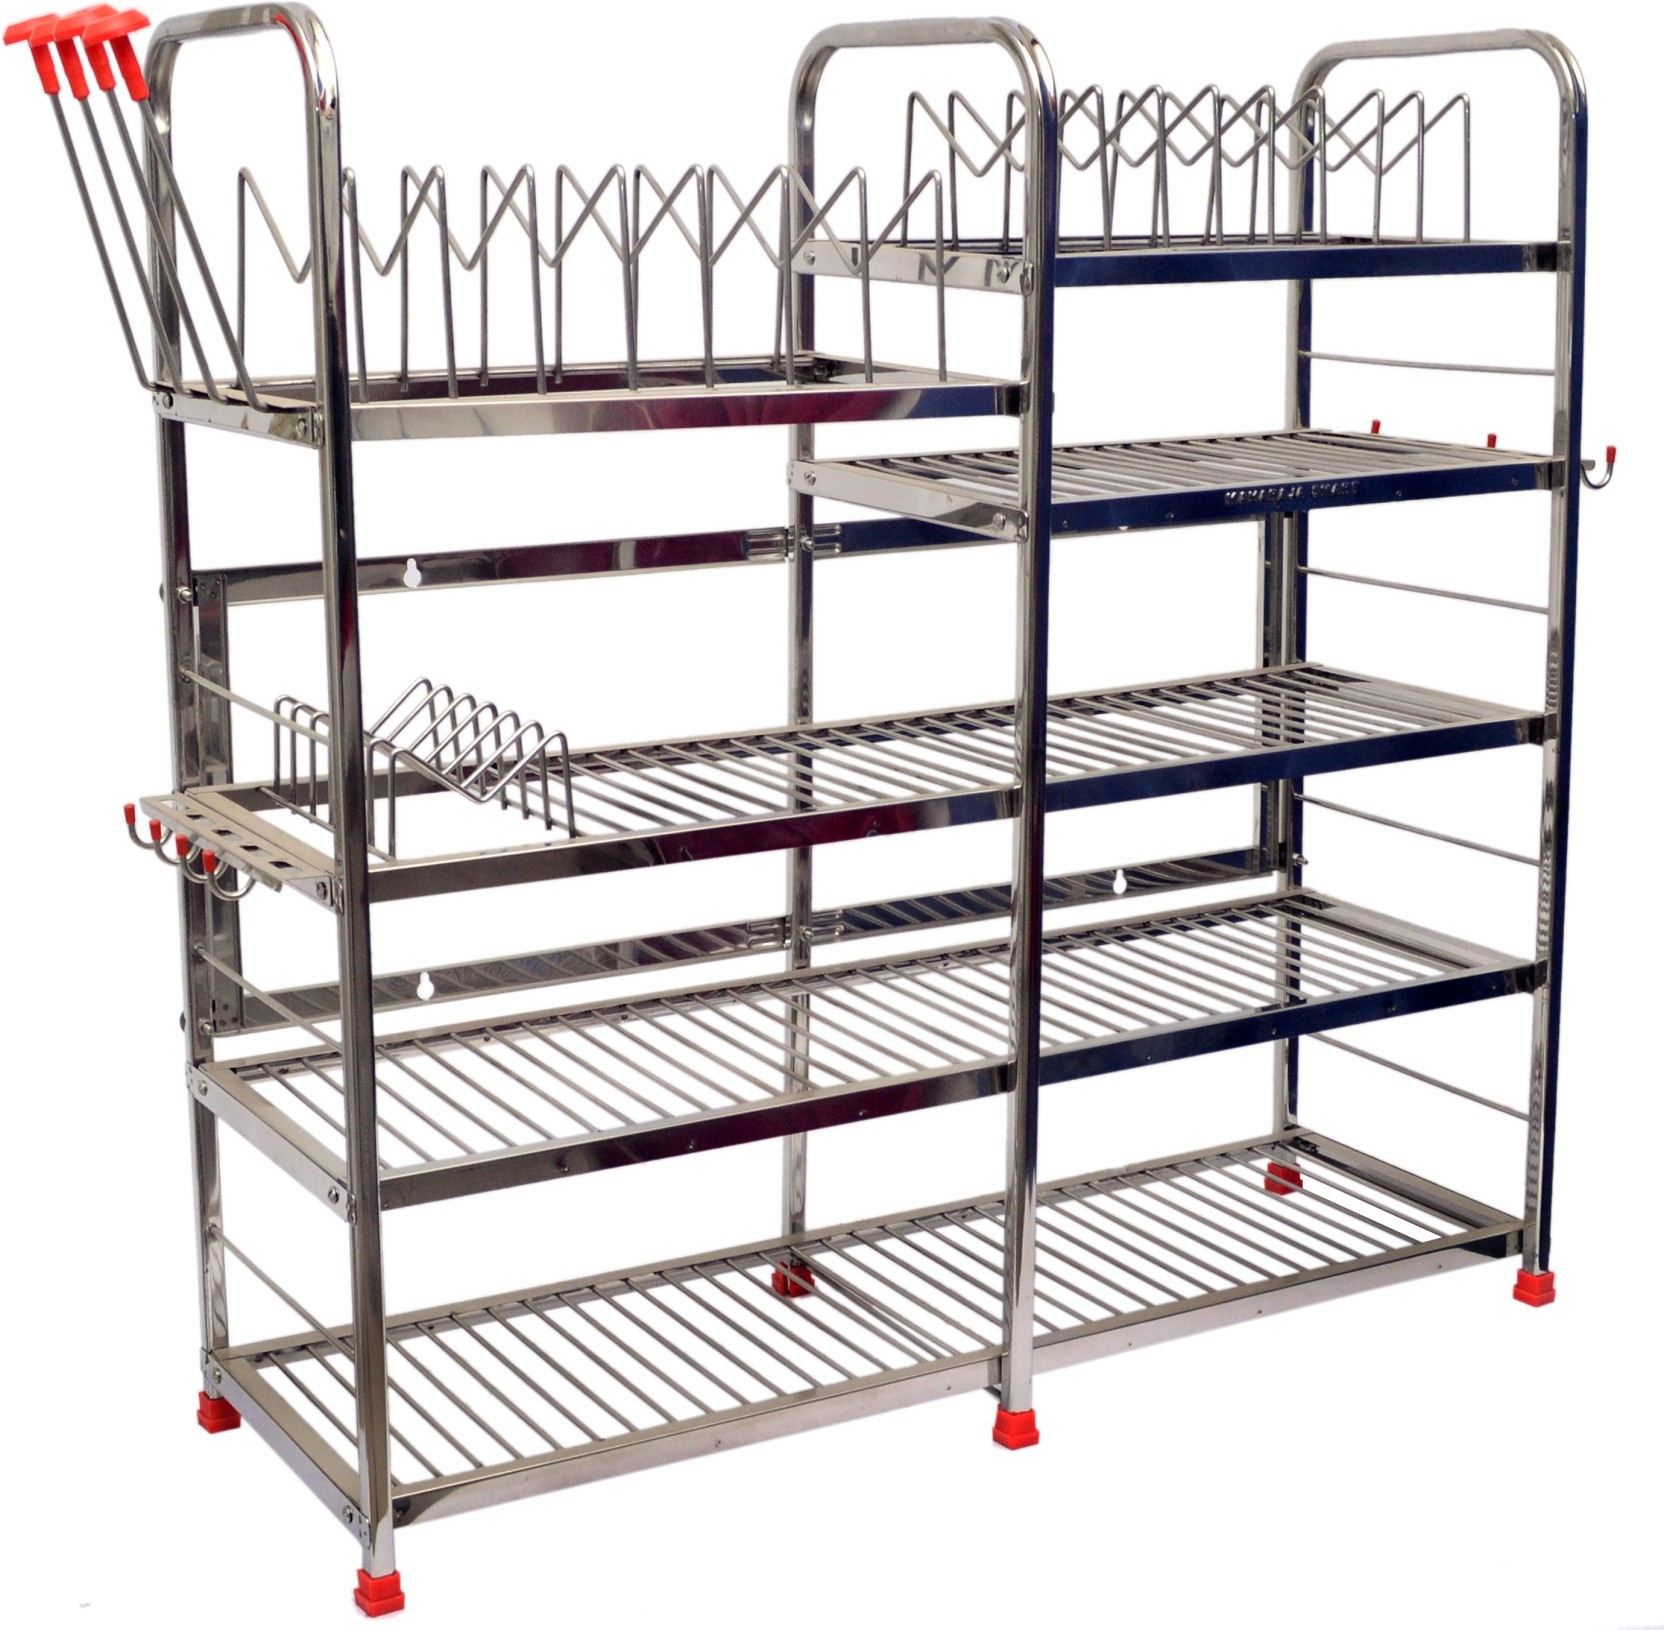 Kitchen Shelves And Racks Online: Maharaja Stainless Steel Kitchen Rack Price In India